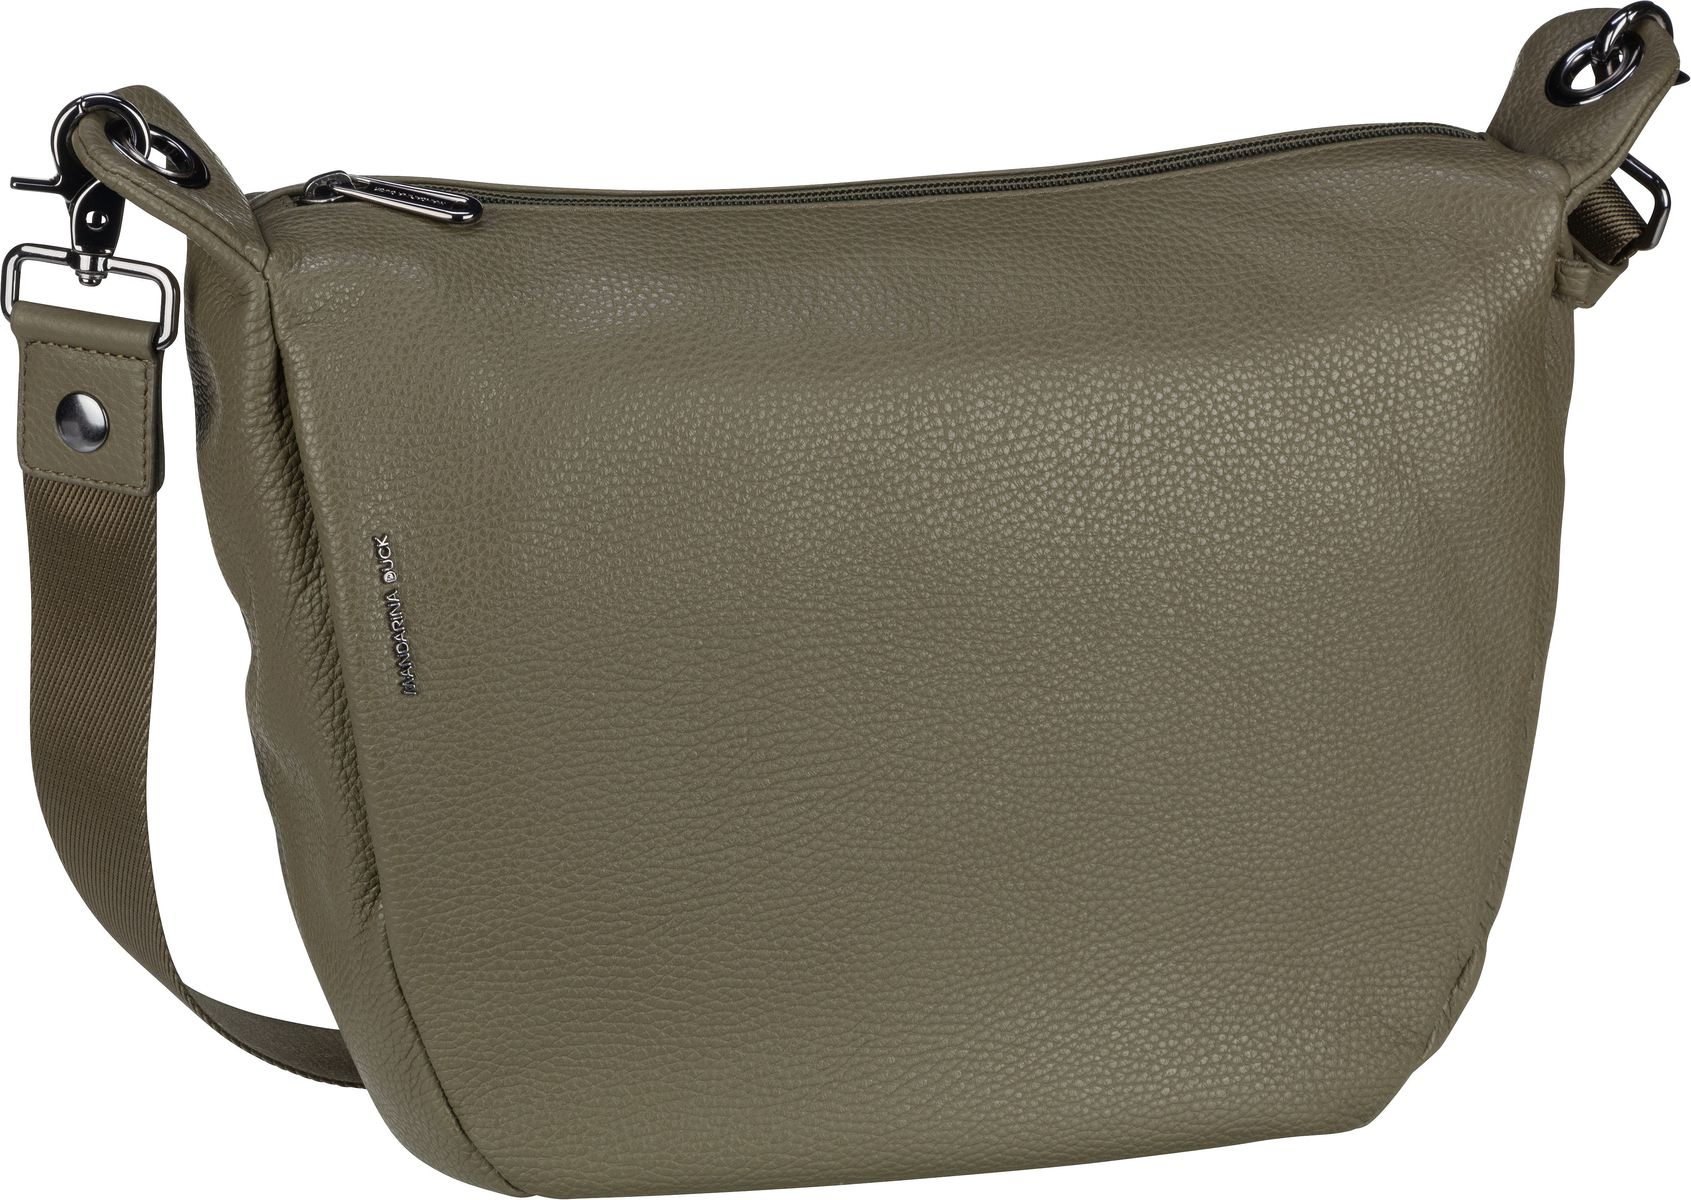 Umhängetasche Mellow Leather Crossbody Military Olive